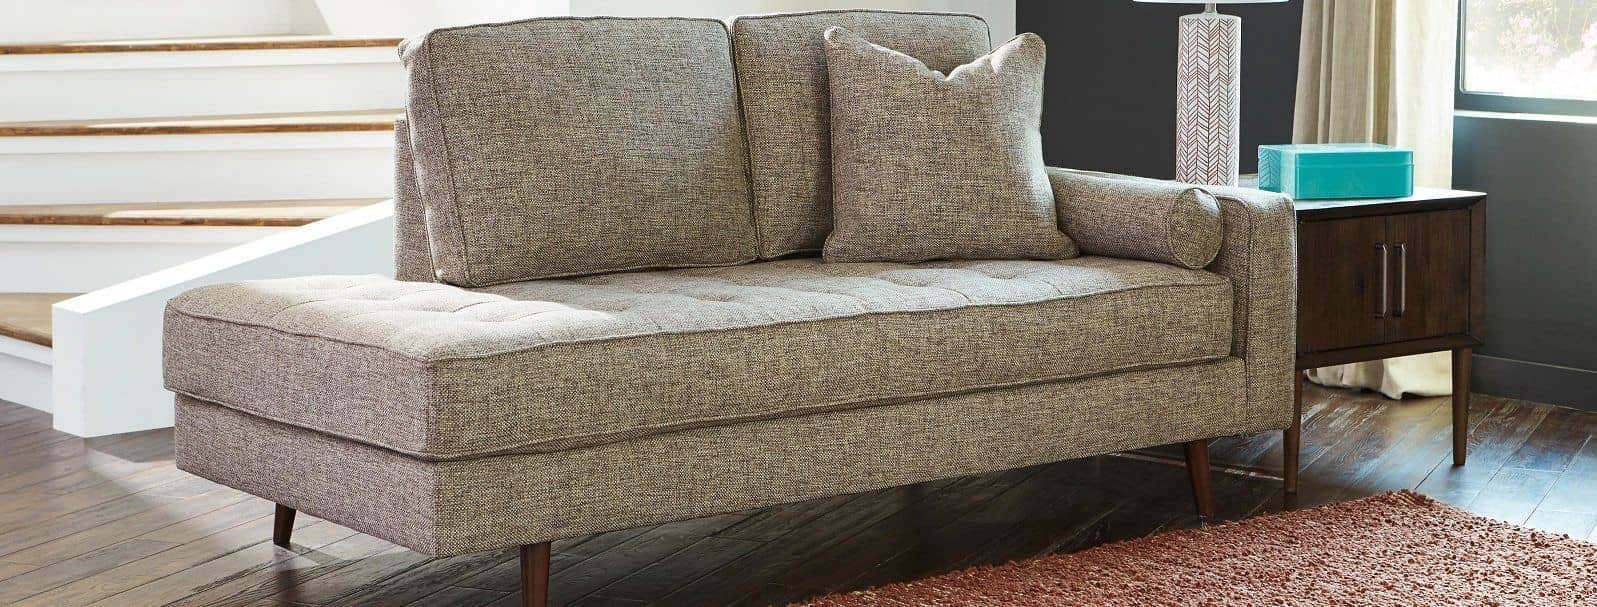 Sofa Deals Near Me Low Cost Furniture Stores In Chicago Area Affordable Portables